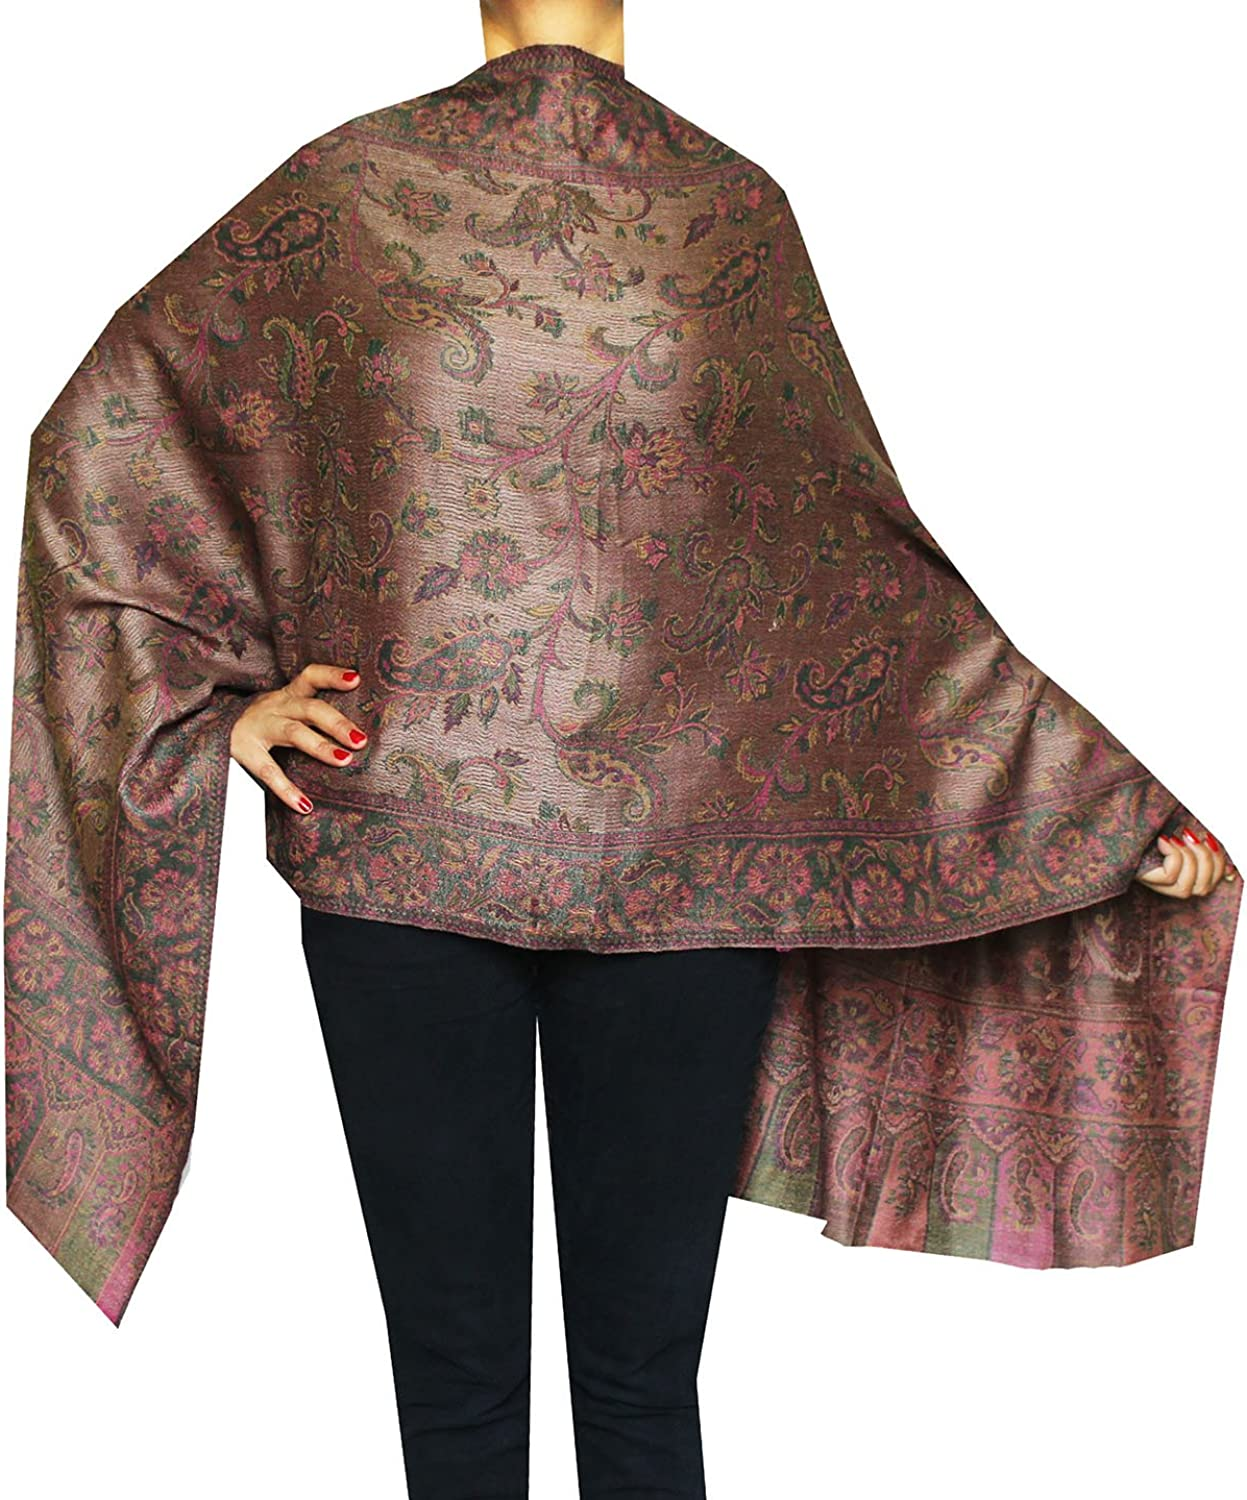 Maple Clothing Scarves Paisley Wool India Clothing Womens Gift (80 x 28 inches)